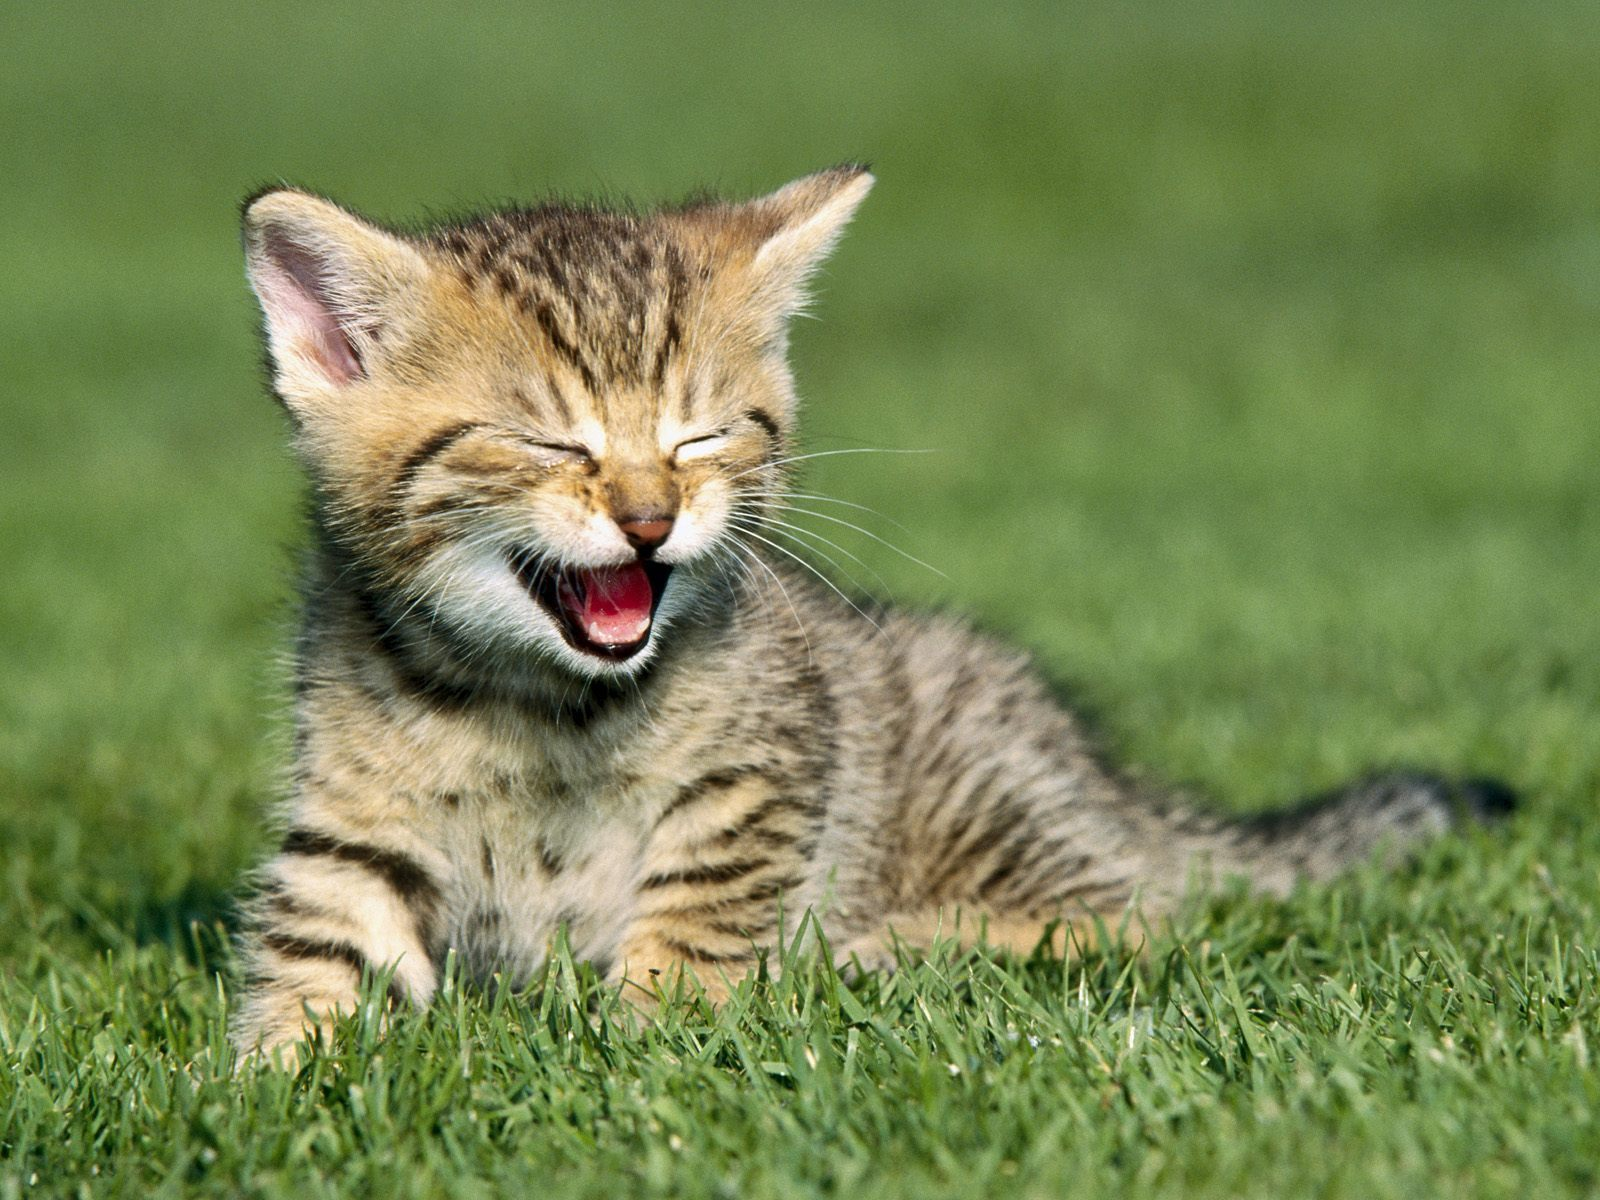 Pictures Of Animals, Happy Kitten on a Lawn 609.16 Kb